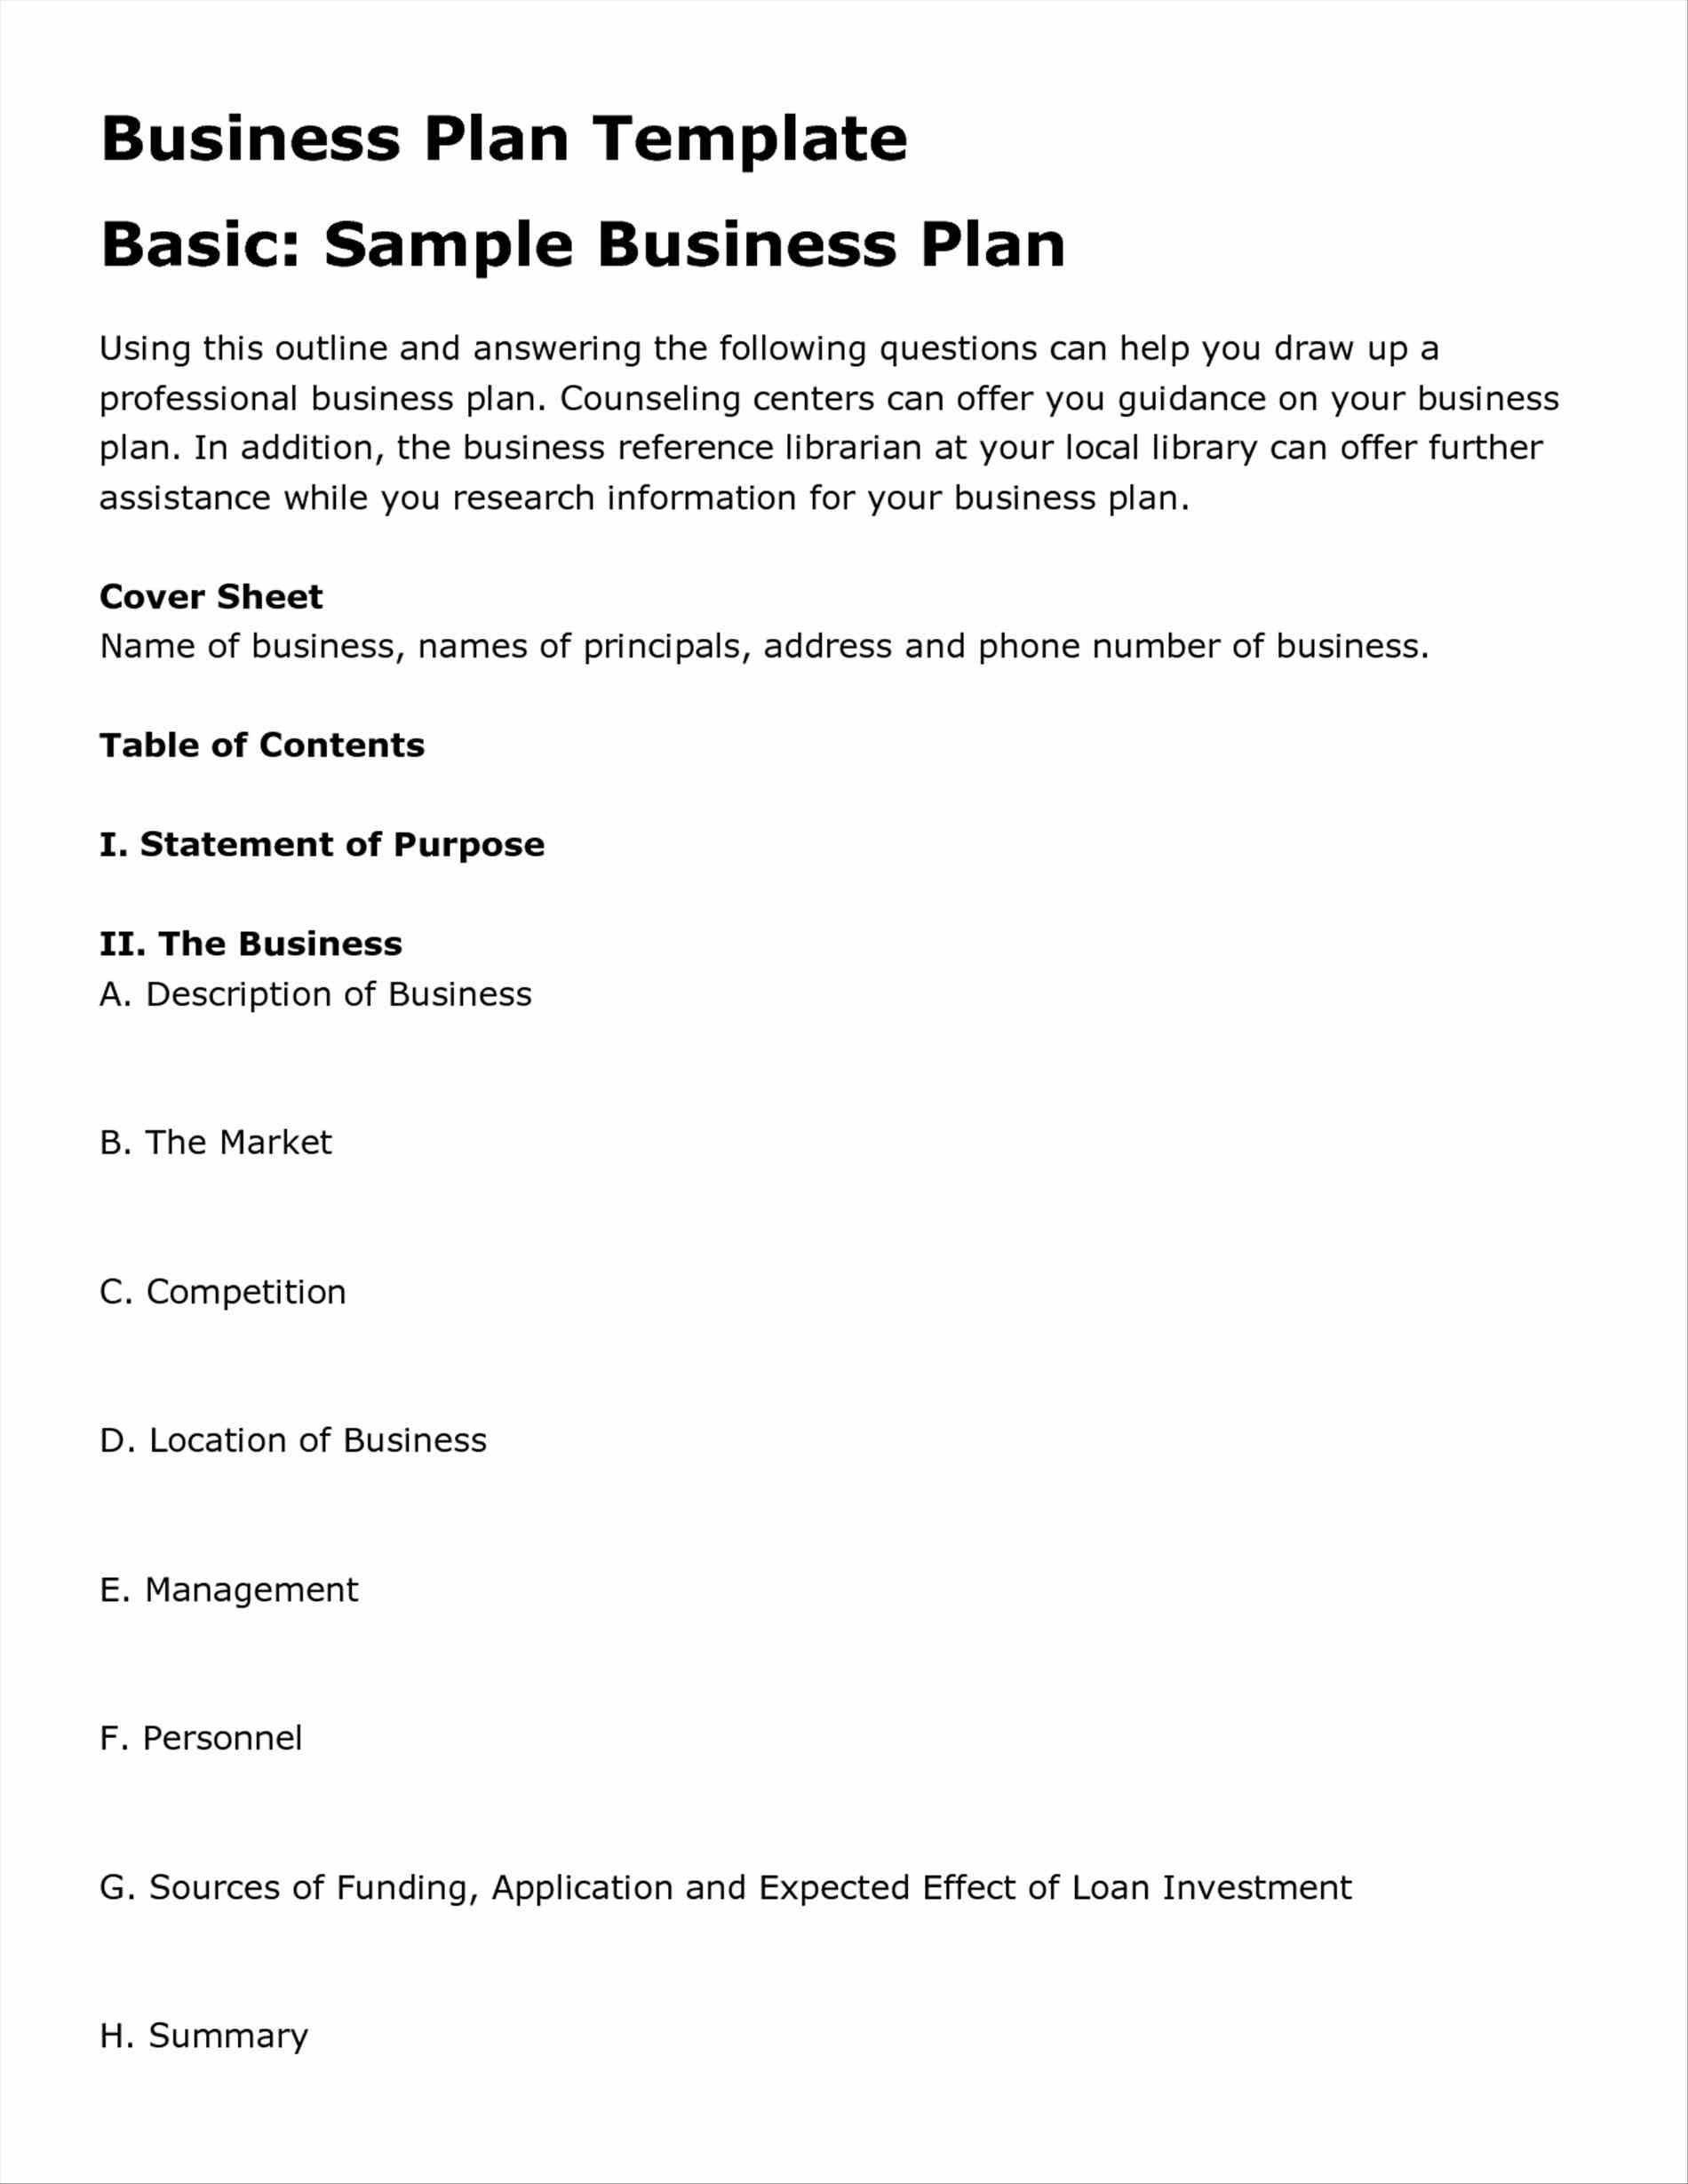 Business plan template restaurant templates in word excel pdf free business plan template restaurant templates in word excel pdf free cafe business plan template restaurant business plan templates in word excel friedricerecipe Gallery